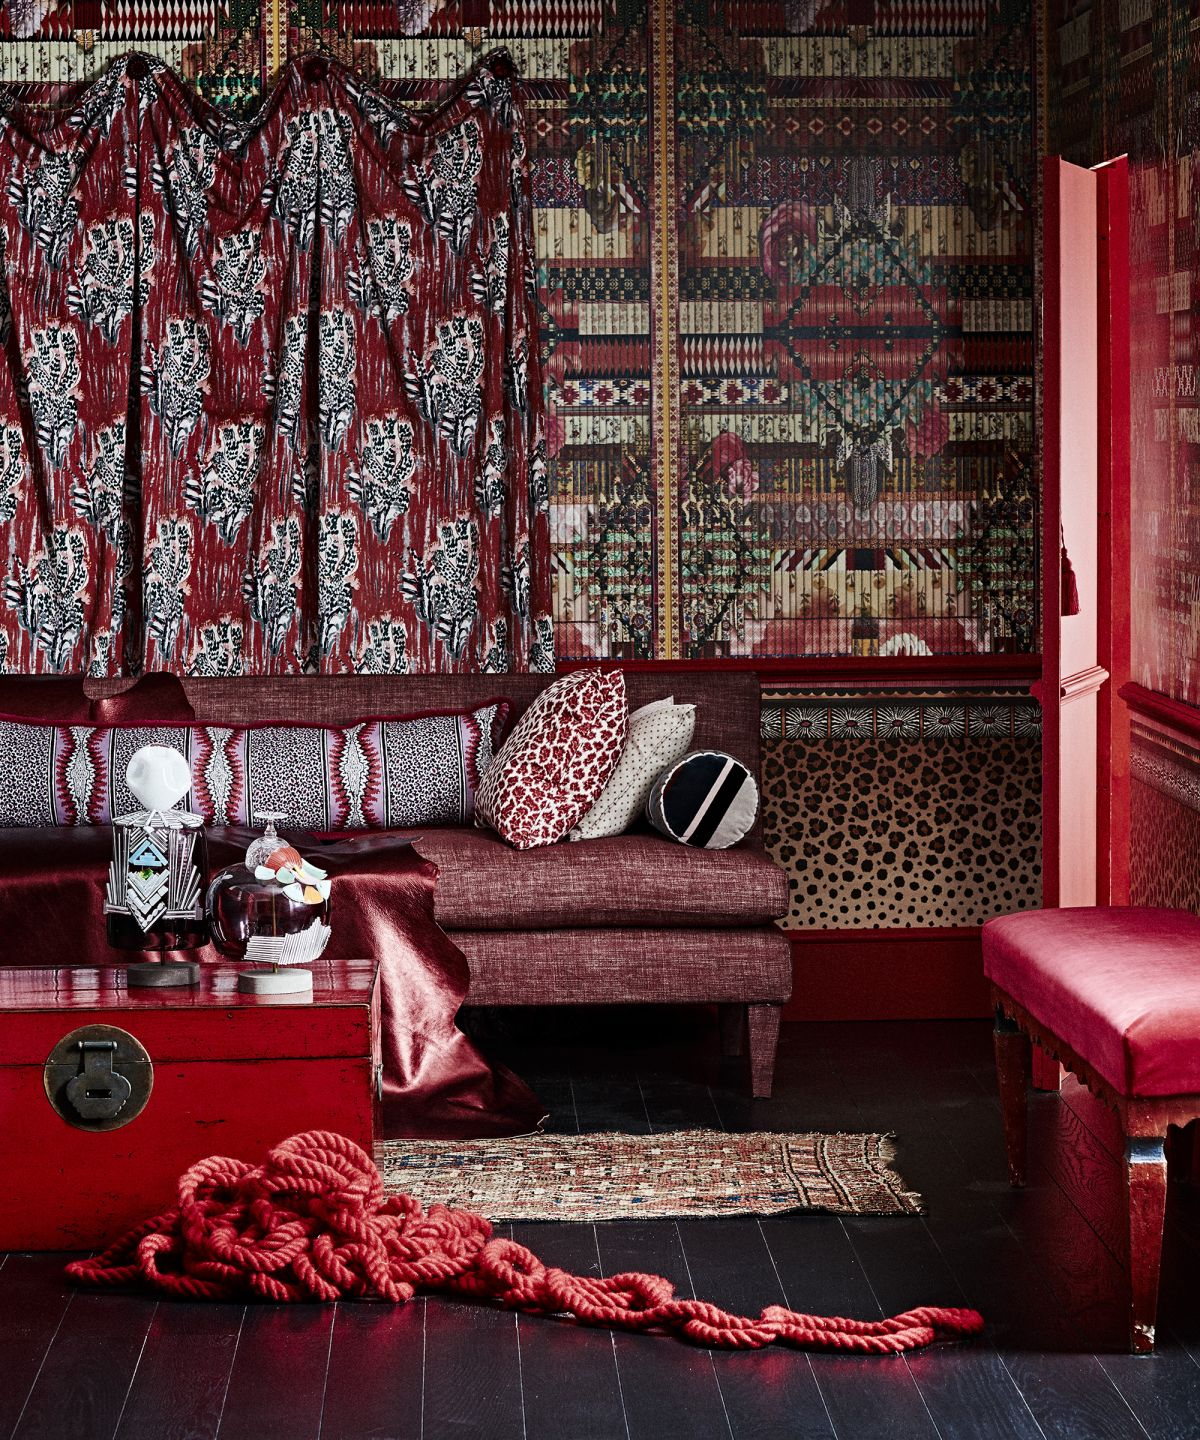 Wallpaper Trends 2021 The Key Looks To Update Your Walls Homes Gardens